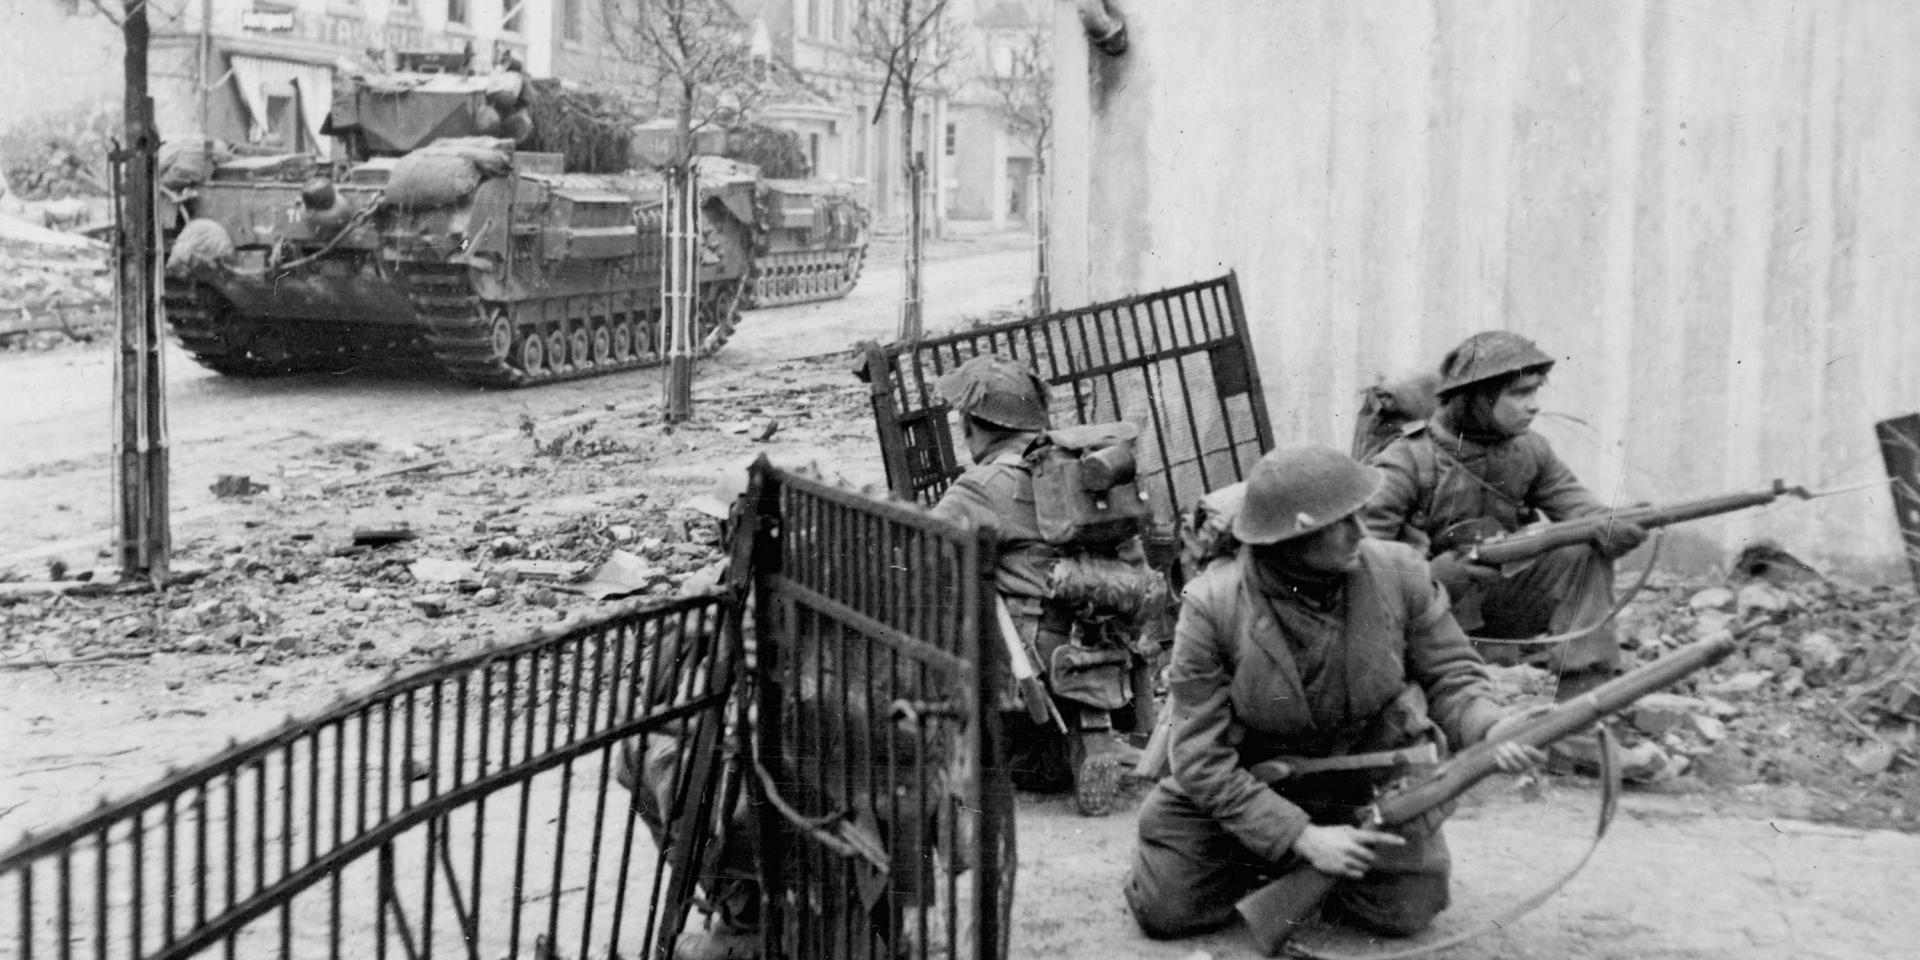 2nd Battalion, The Gordon Highlanders, supported by Churchill tanks of the Guards Armoured Division, fight their way into Kleve, 11 February 1945